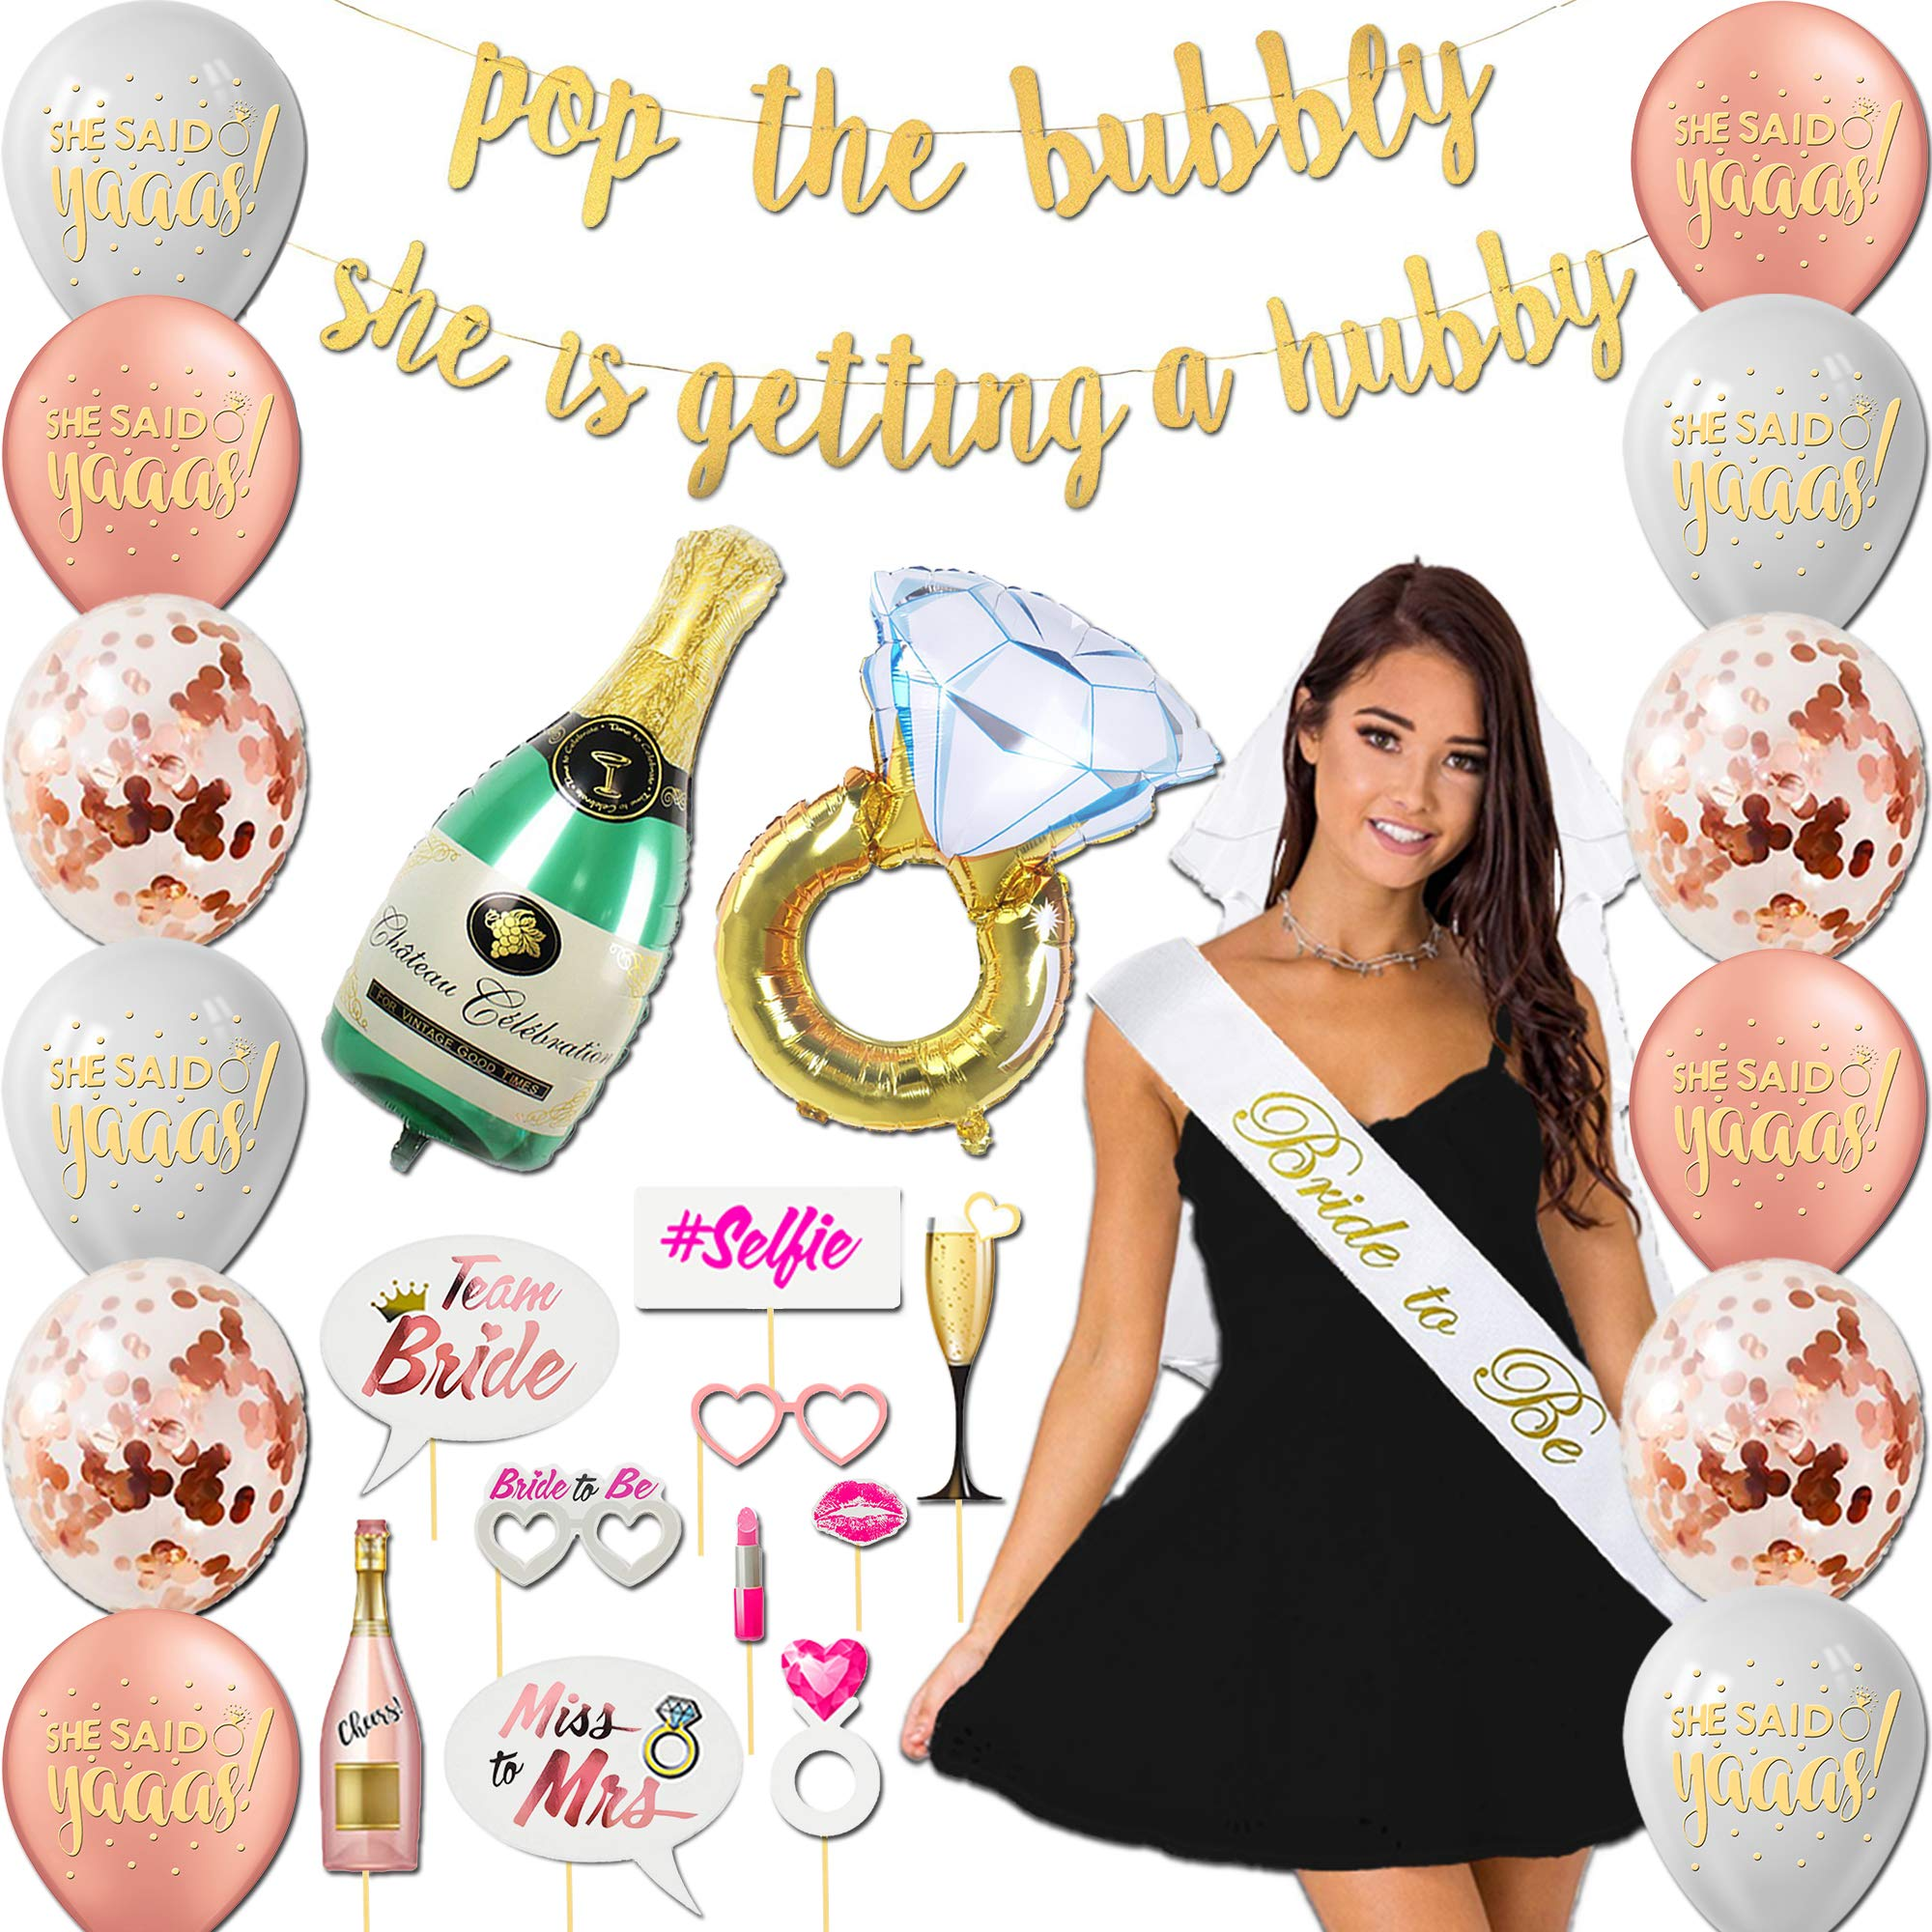 Golden Shop Bachelorette Party Decorations Kit | Bridal Shower Supplies - Bride to Be Sash,Veil, Ring Foil Balloon, Champagne Bottle Foil Balloon, 2 Gold banners,10 Photo Booth Props,12 Latex Balloons